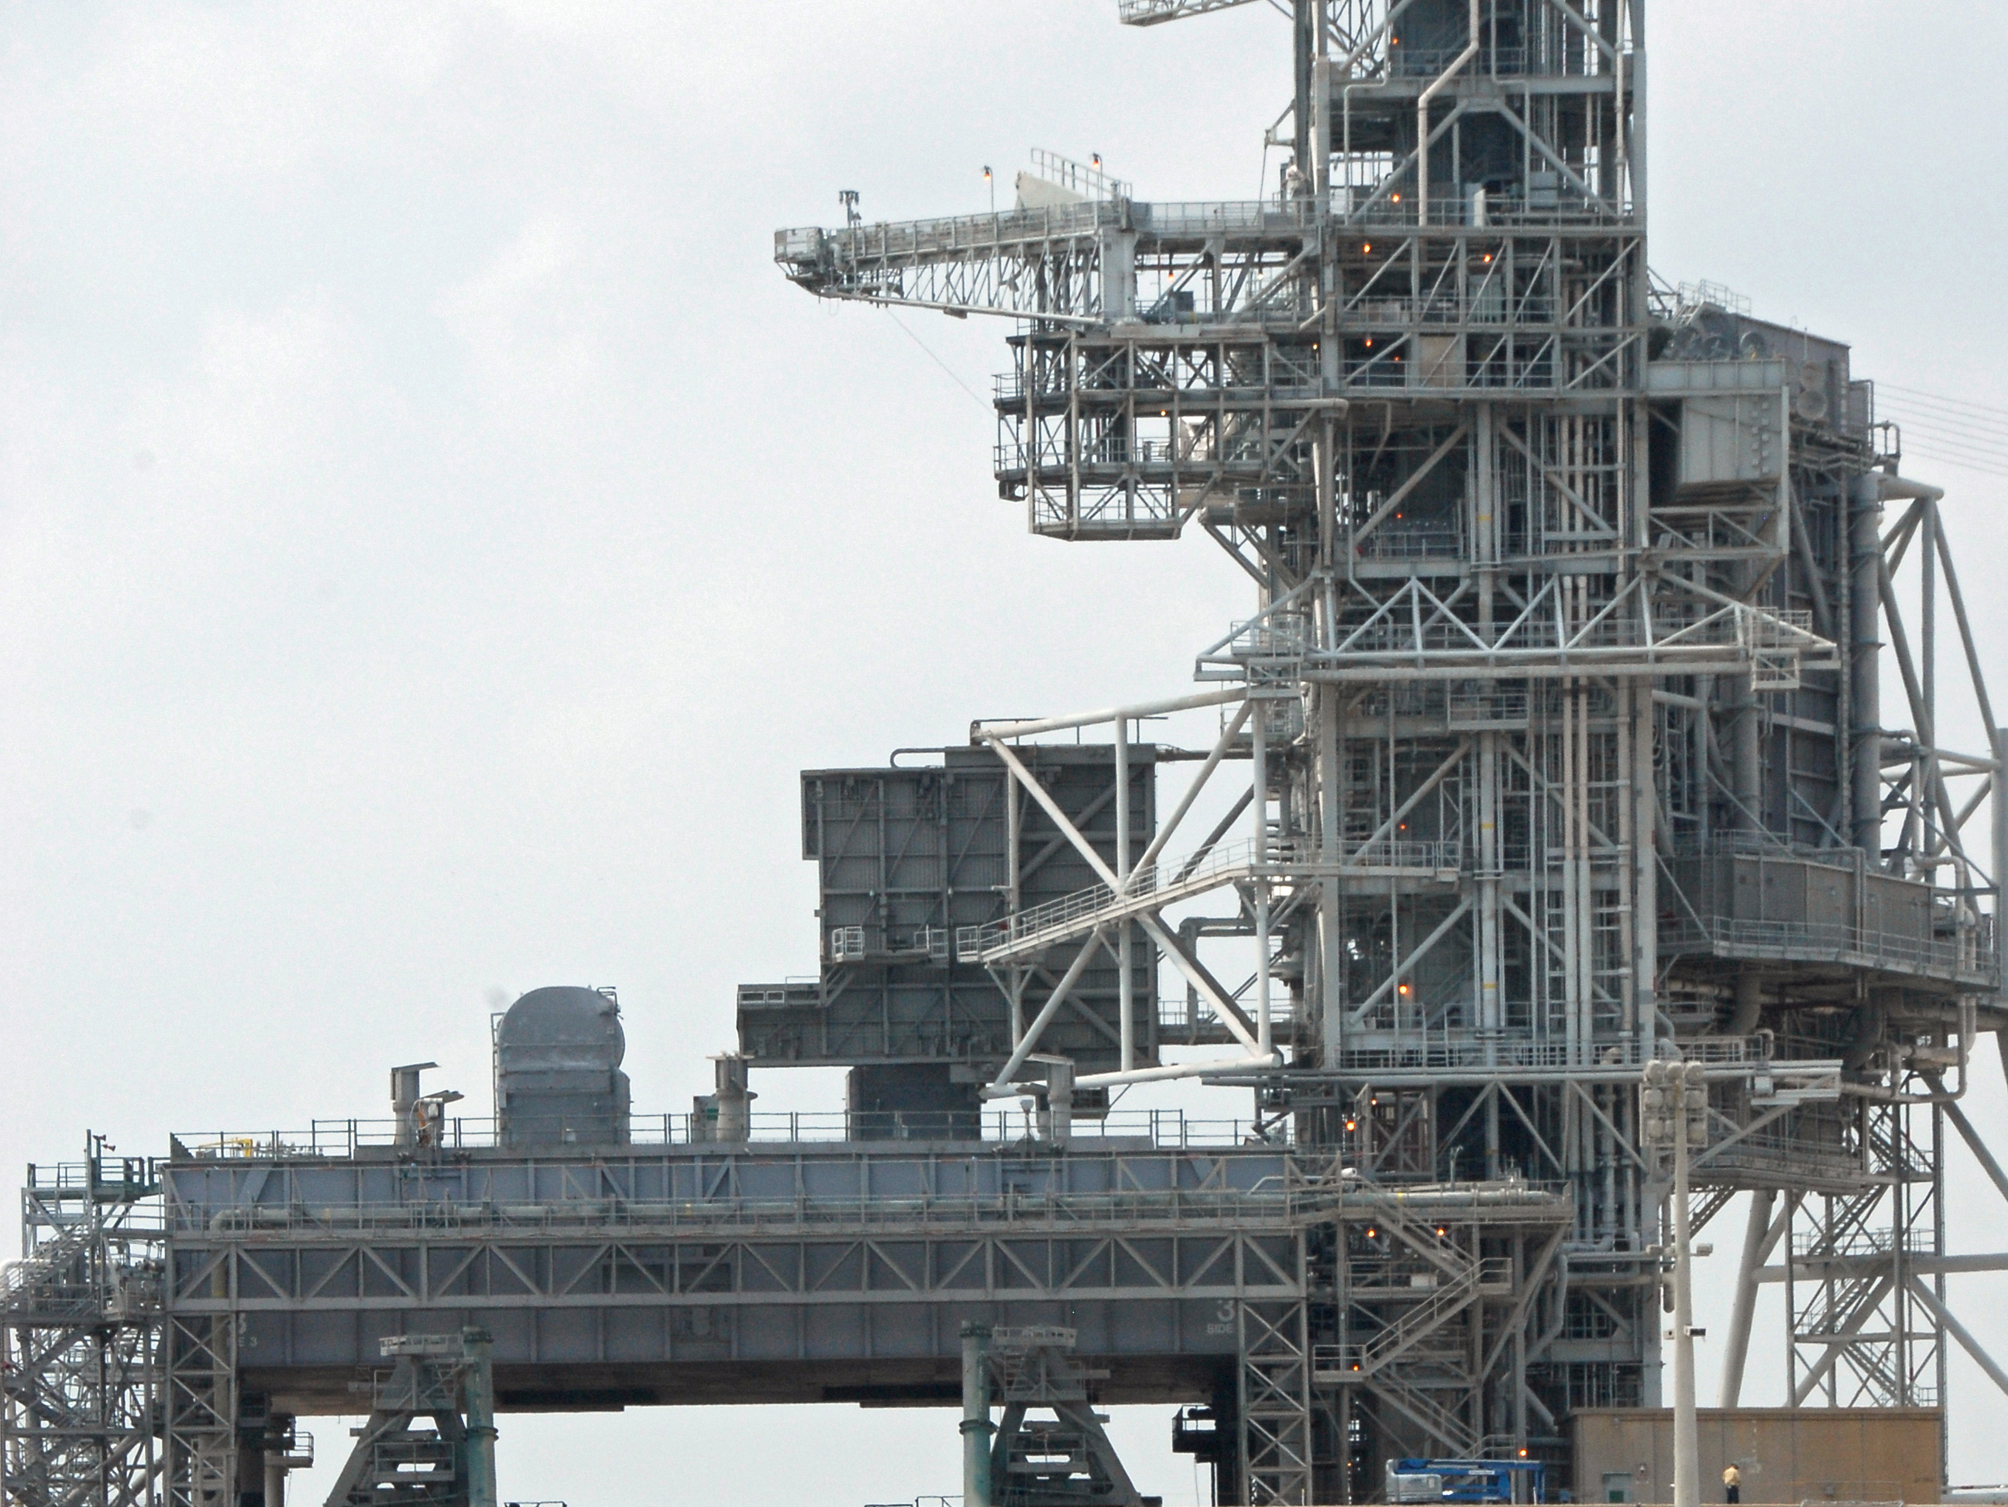 spacex launch pad 39a - photo #9